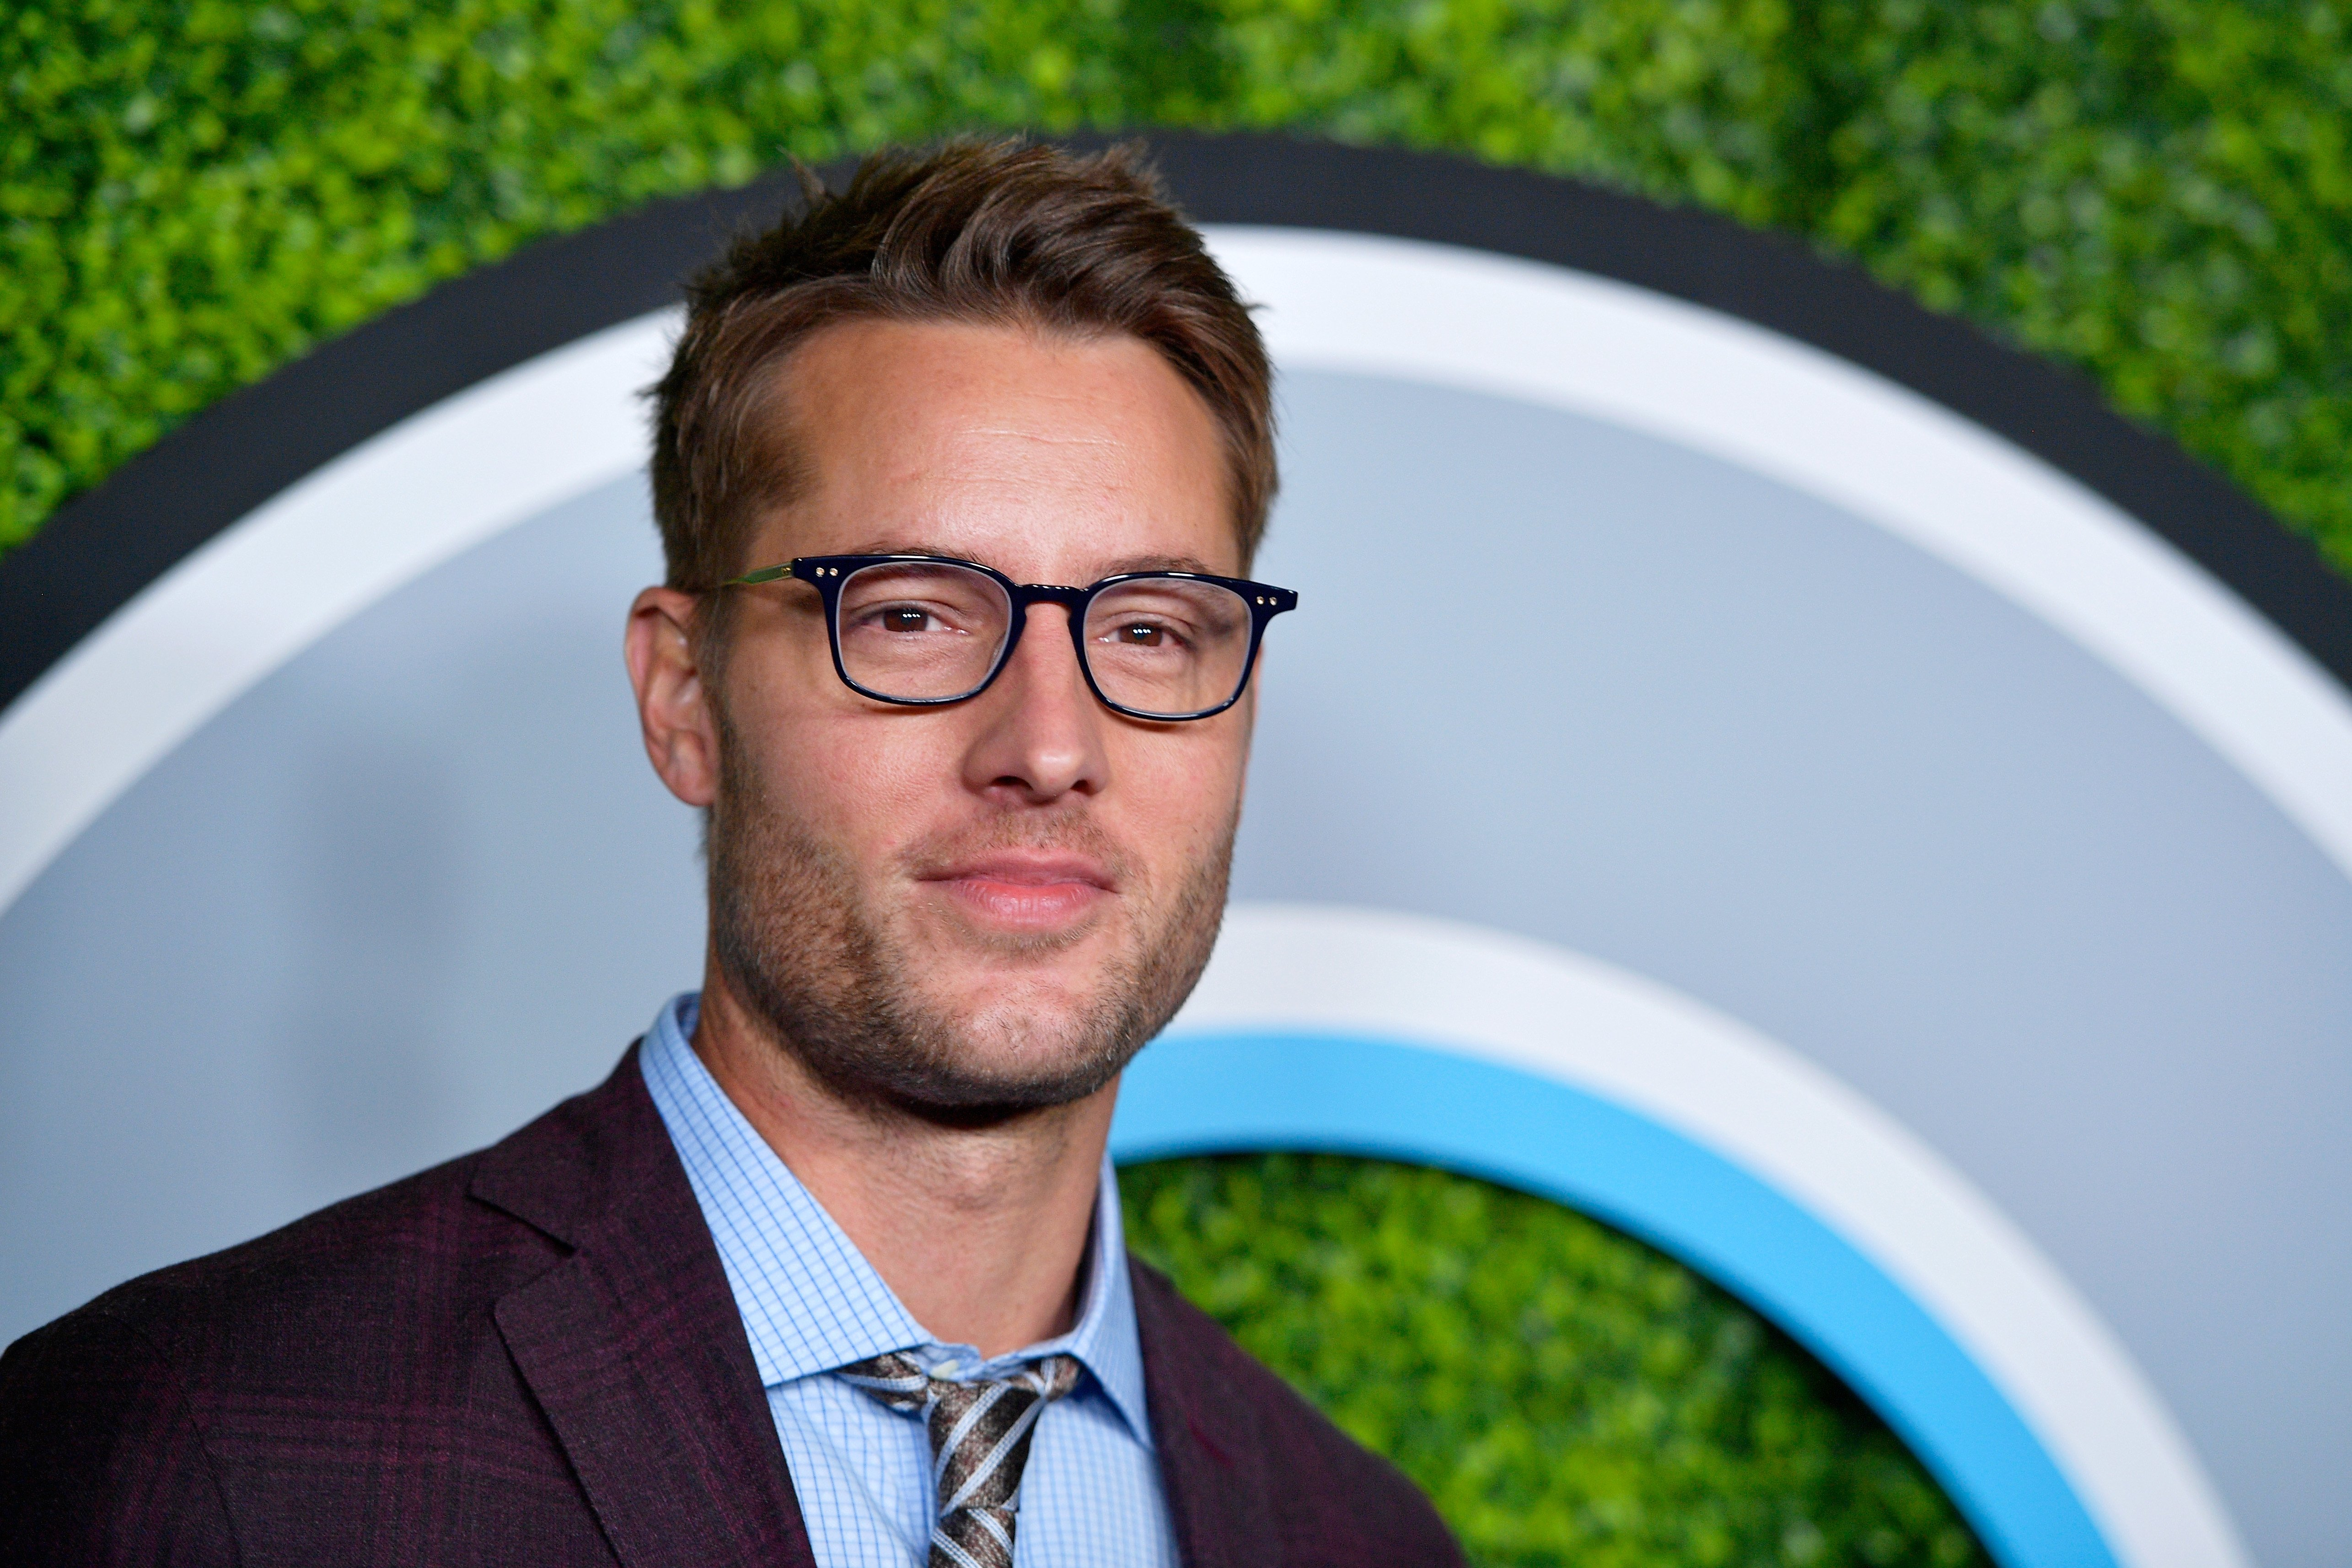 Justin Hartley attends the 2017 GQ Men of the Year party on December 7, 2017, in Los Angeles, California. | Source: Getty Images.